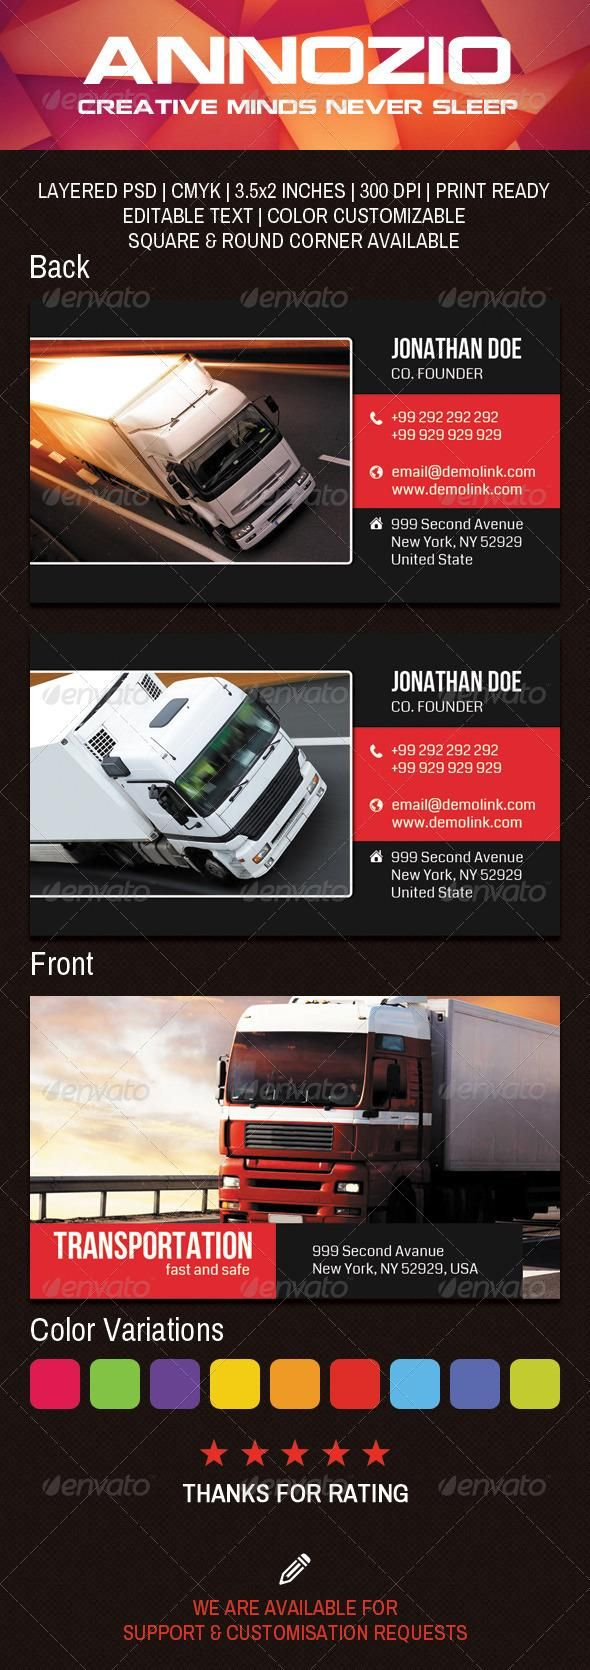 41 best transport business images on pinterest  business cards